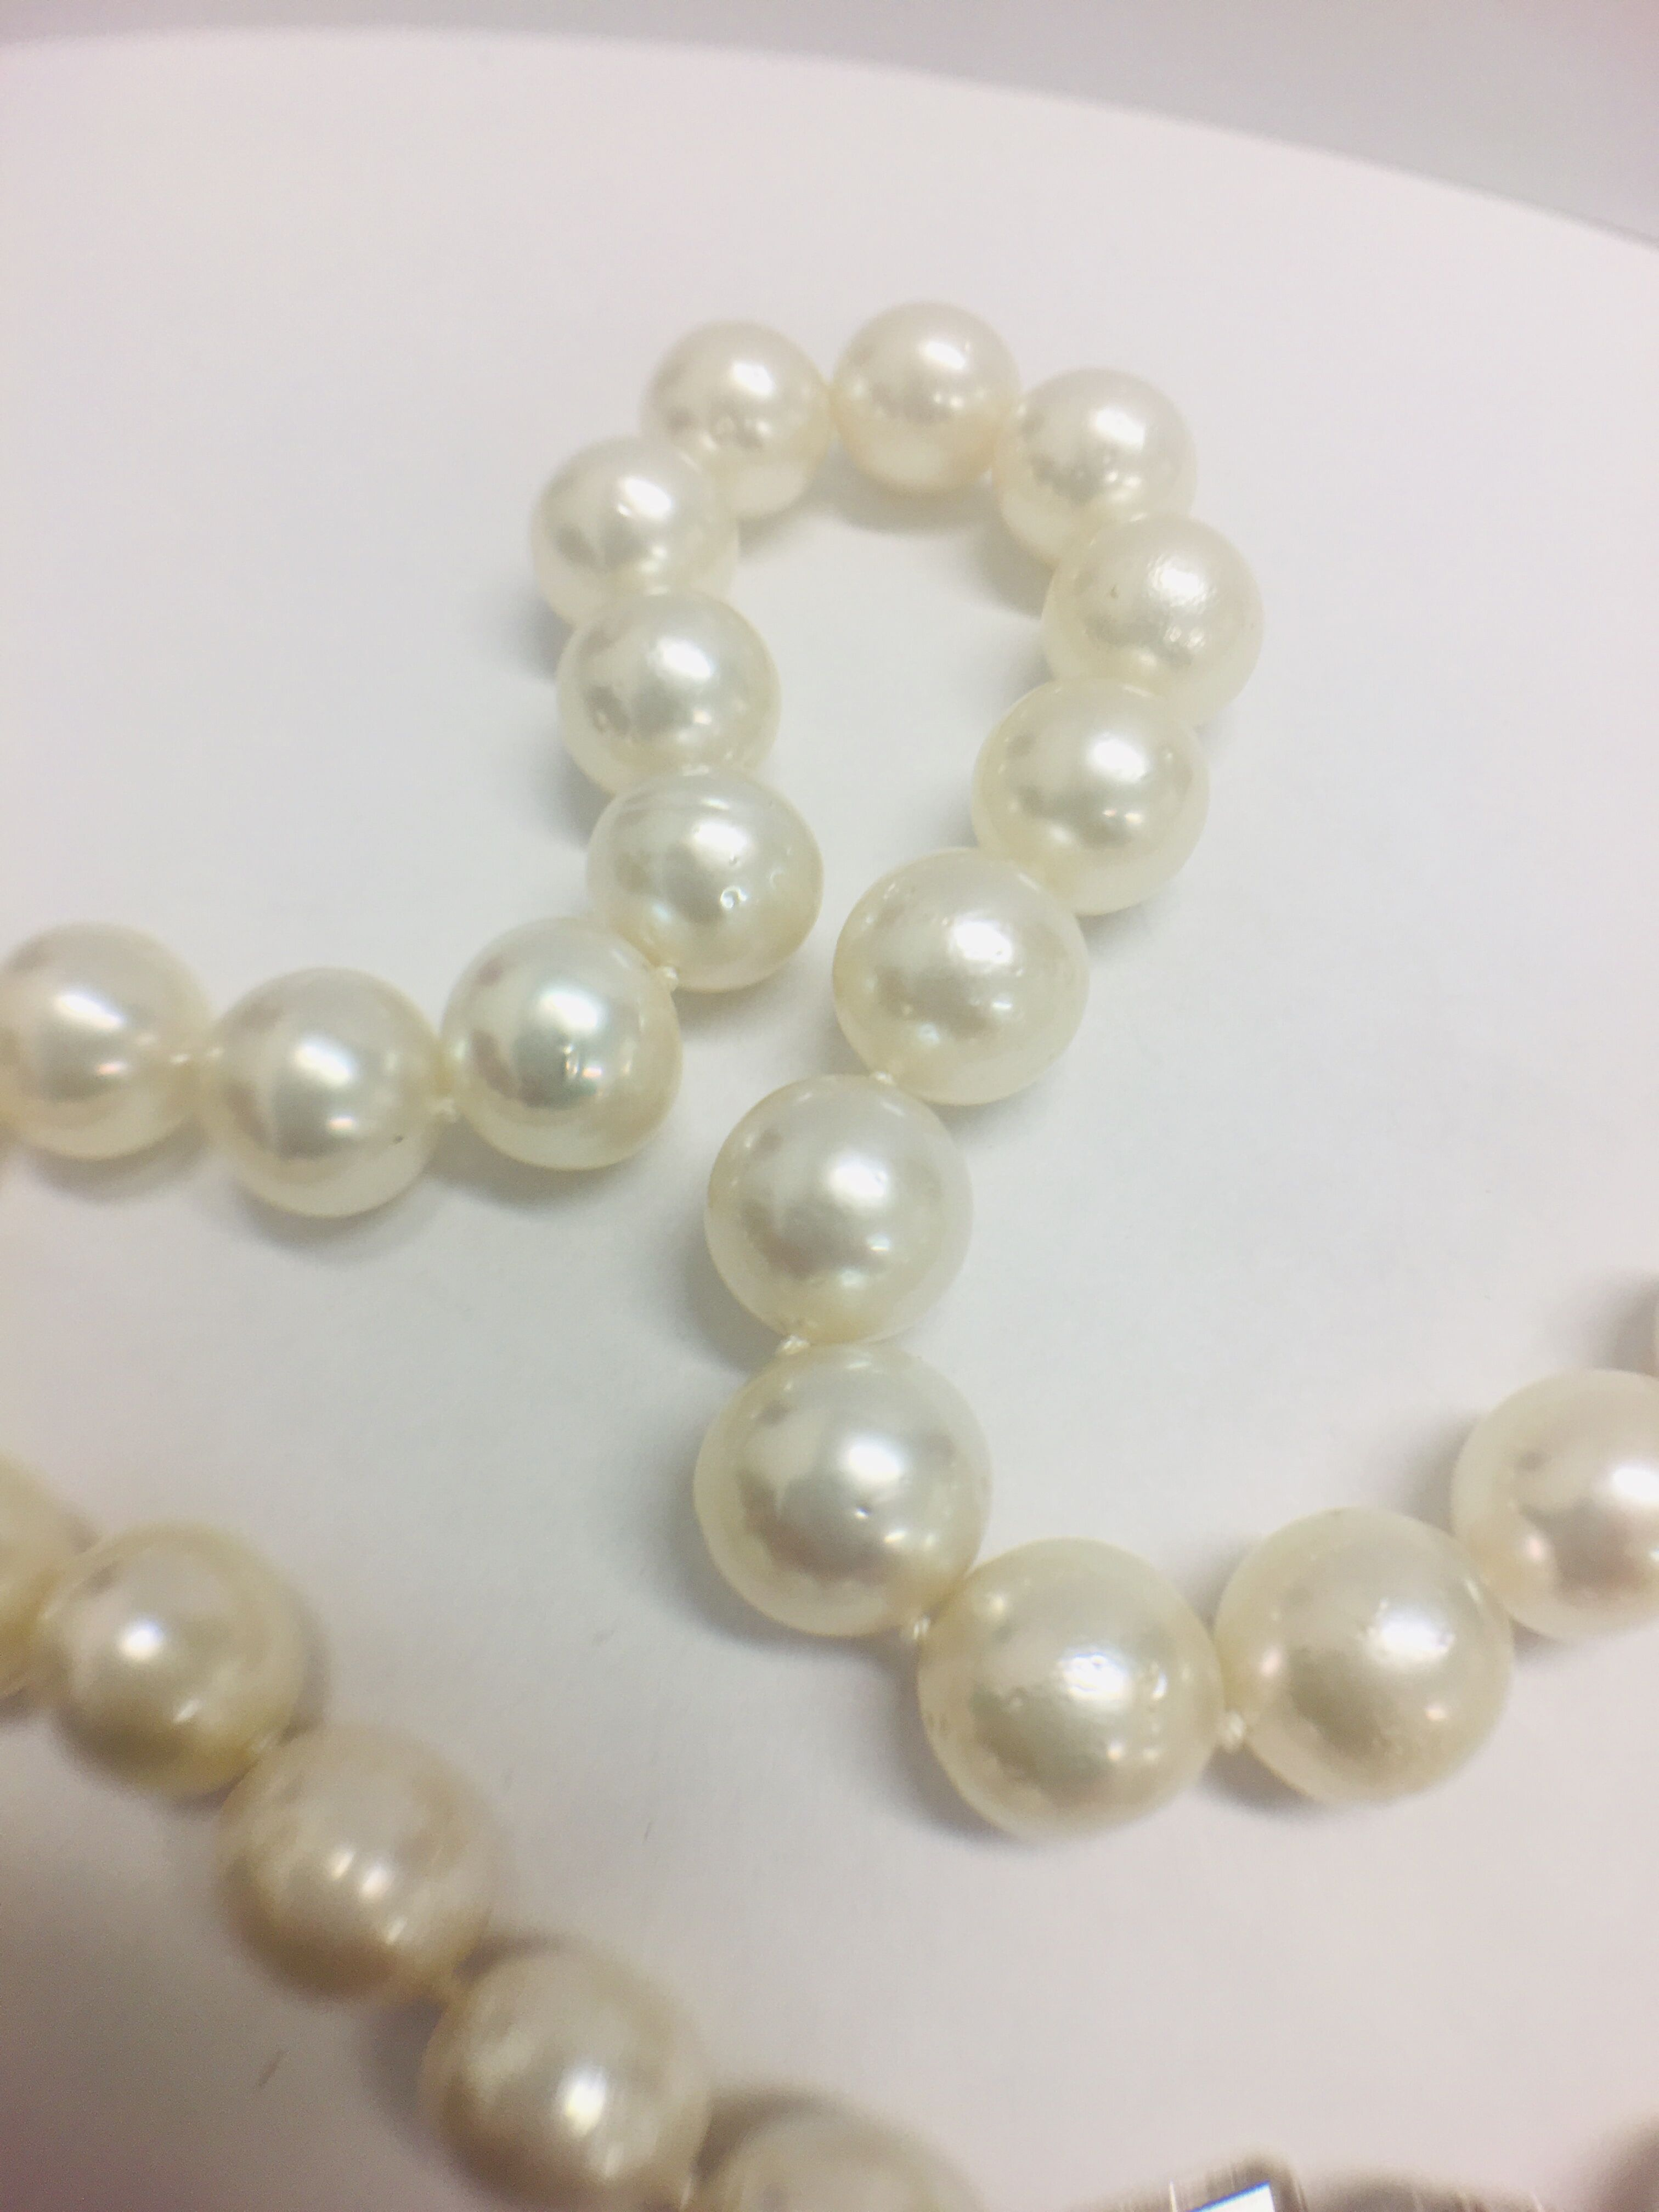 Lot 27 - Strand 35 South Sea Pearls with 14ct White Gold Filagree Style Ball